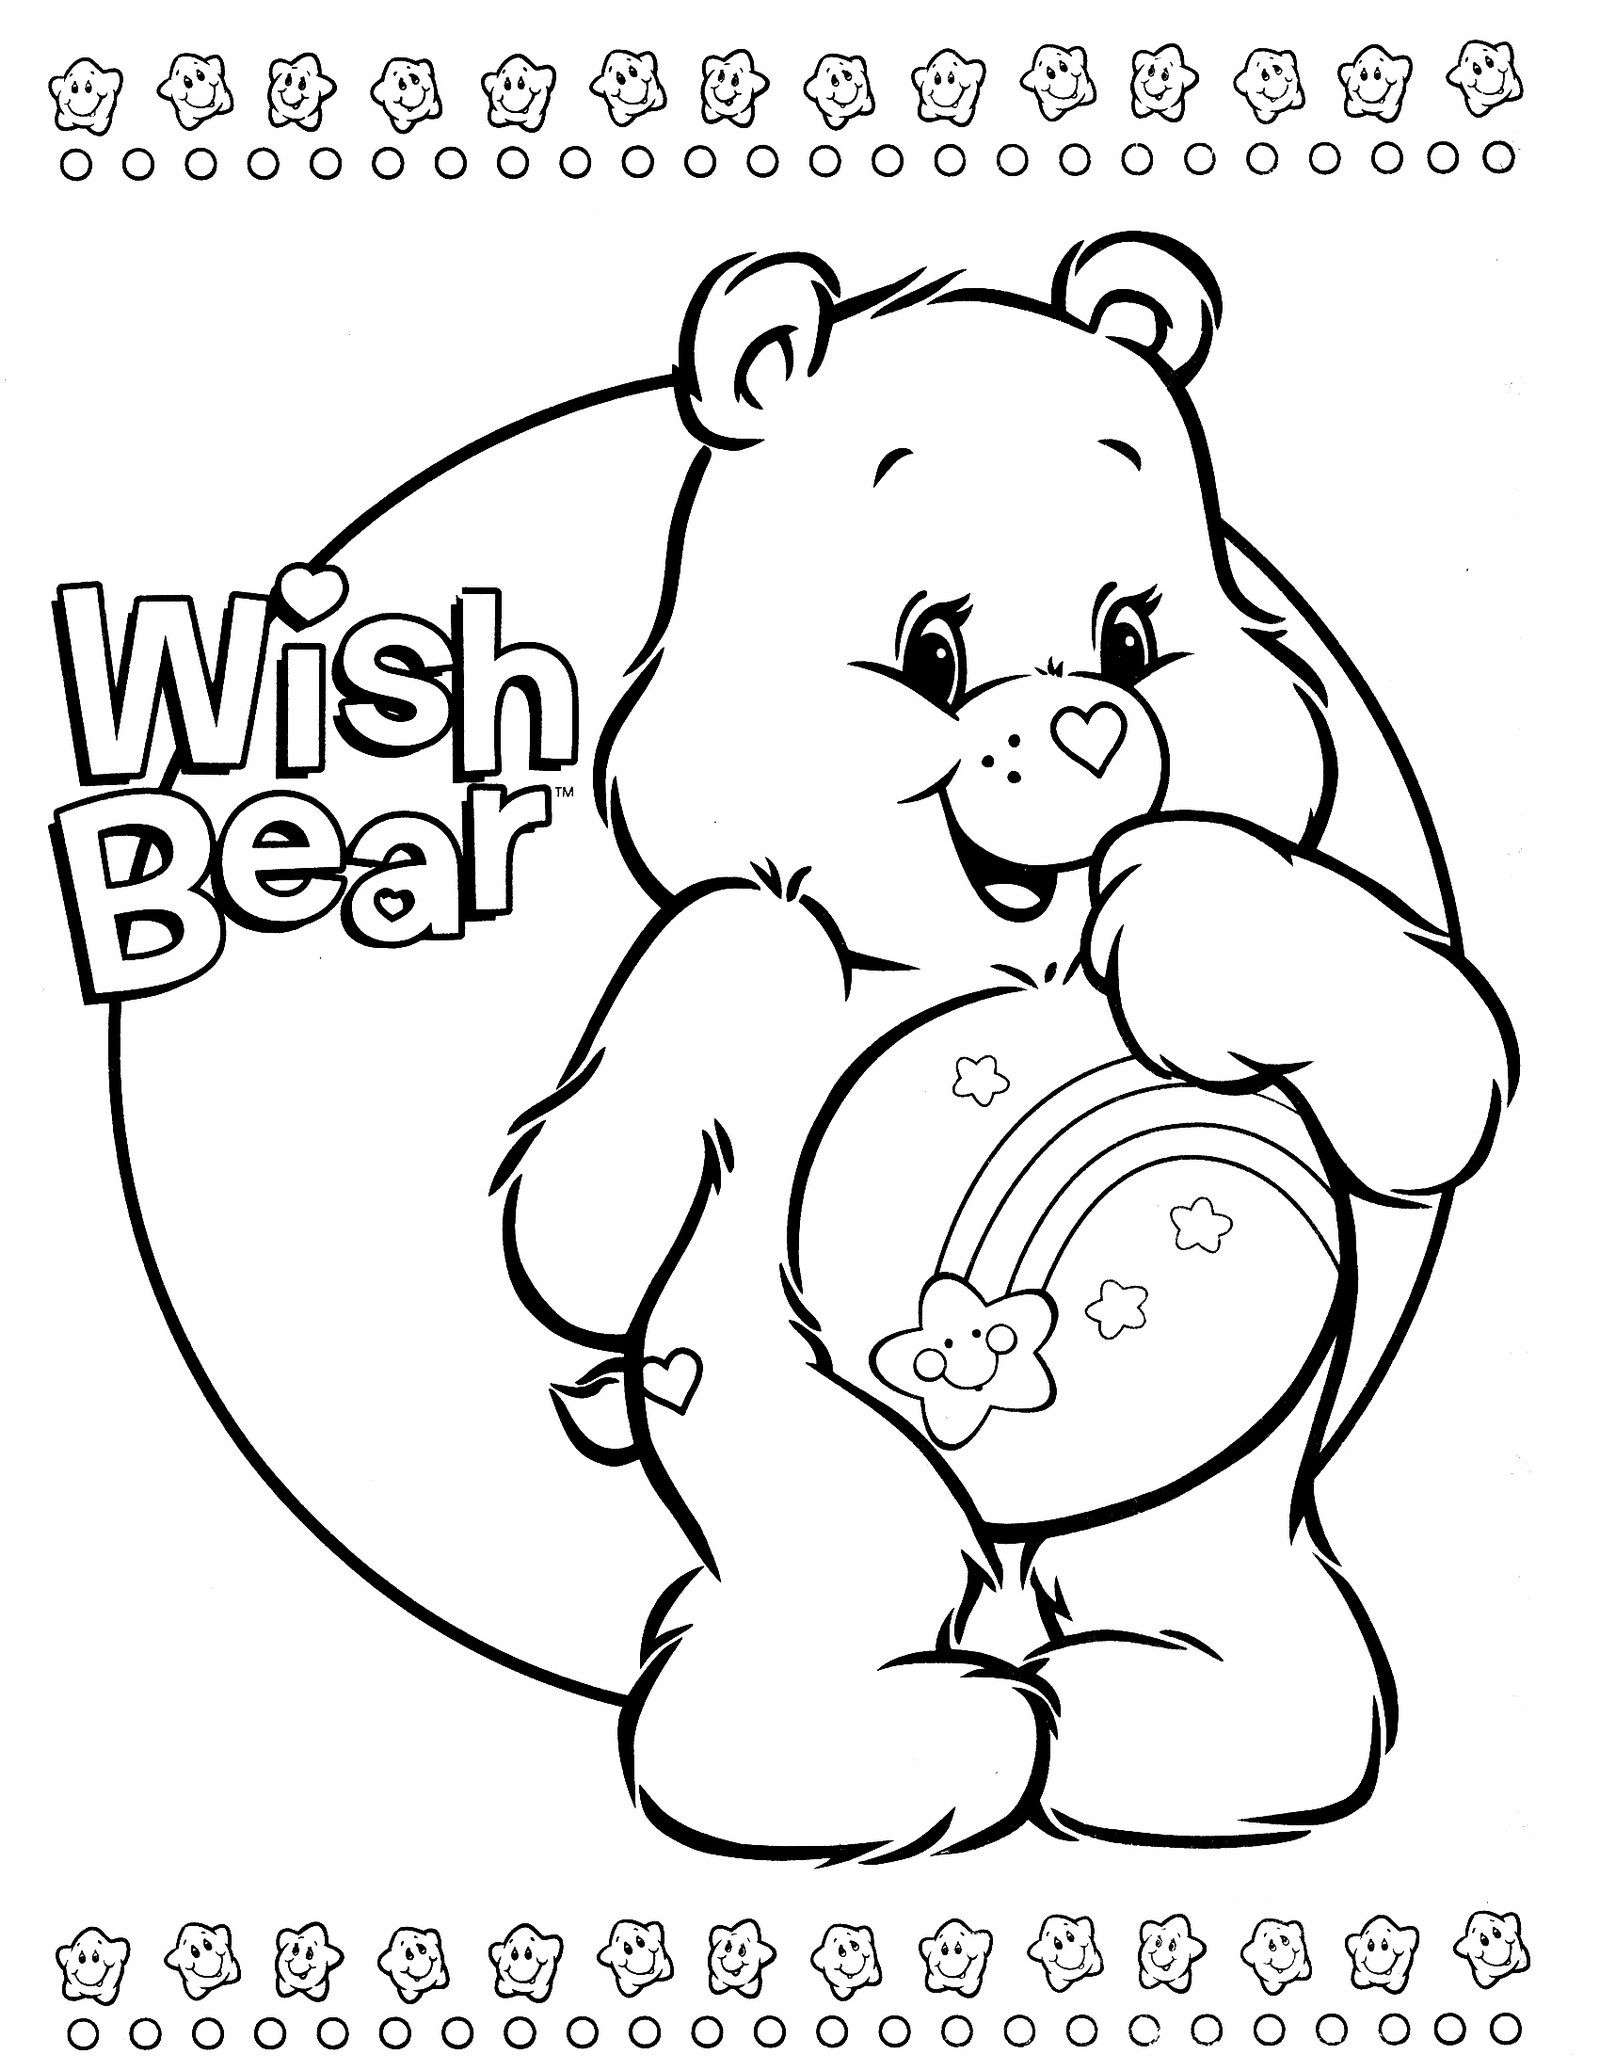 Wish Bear From Care Bears Coloring Book  Bear coloring pages